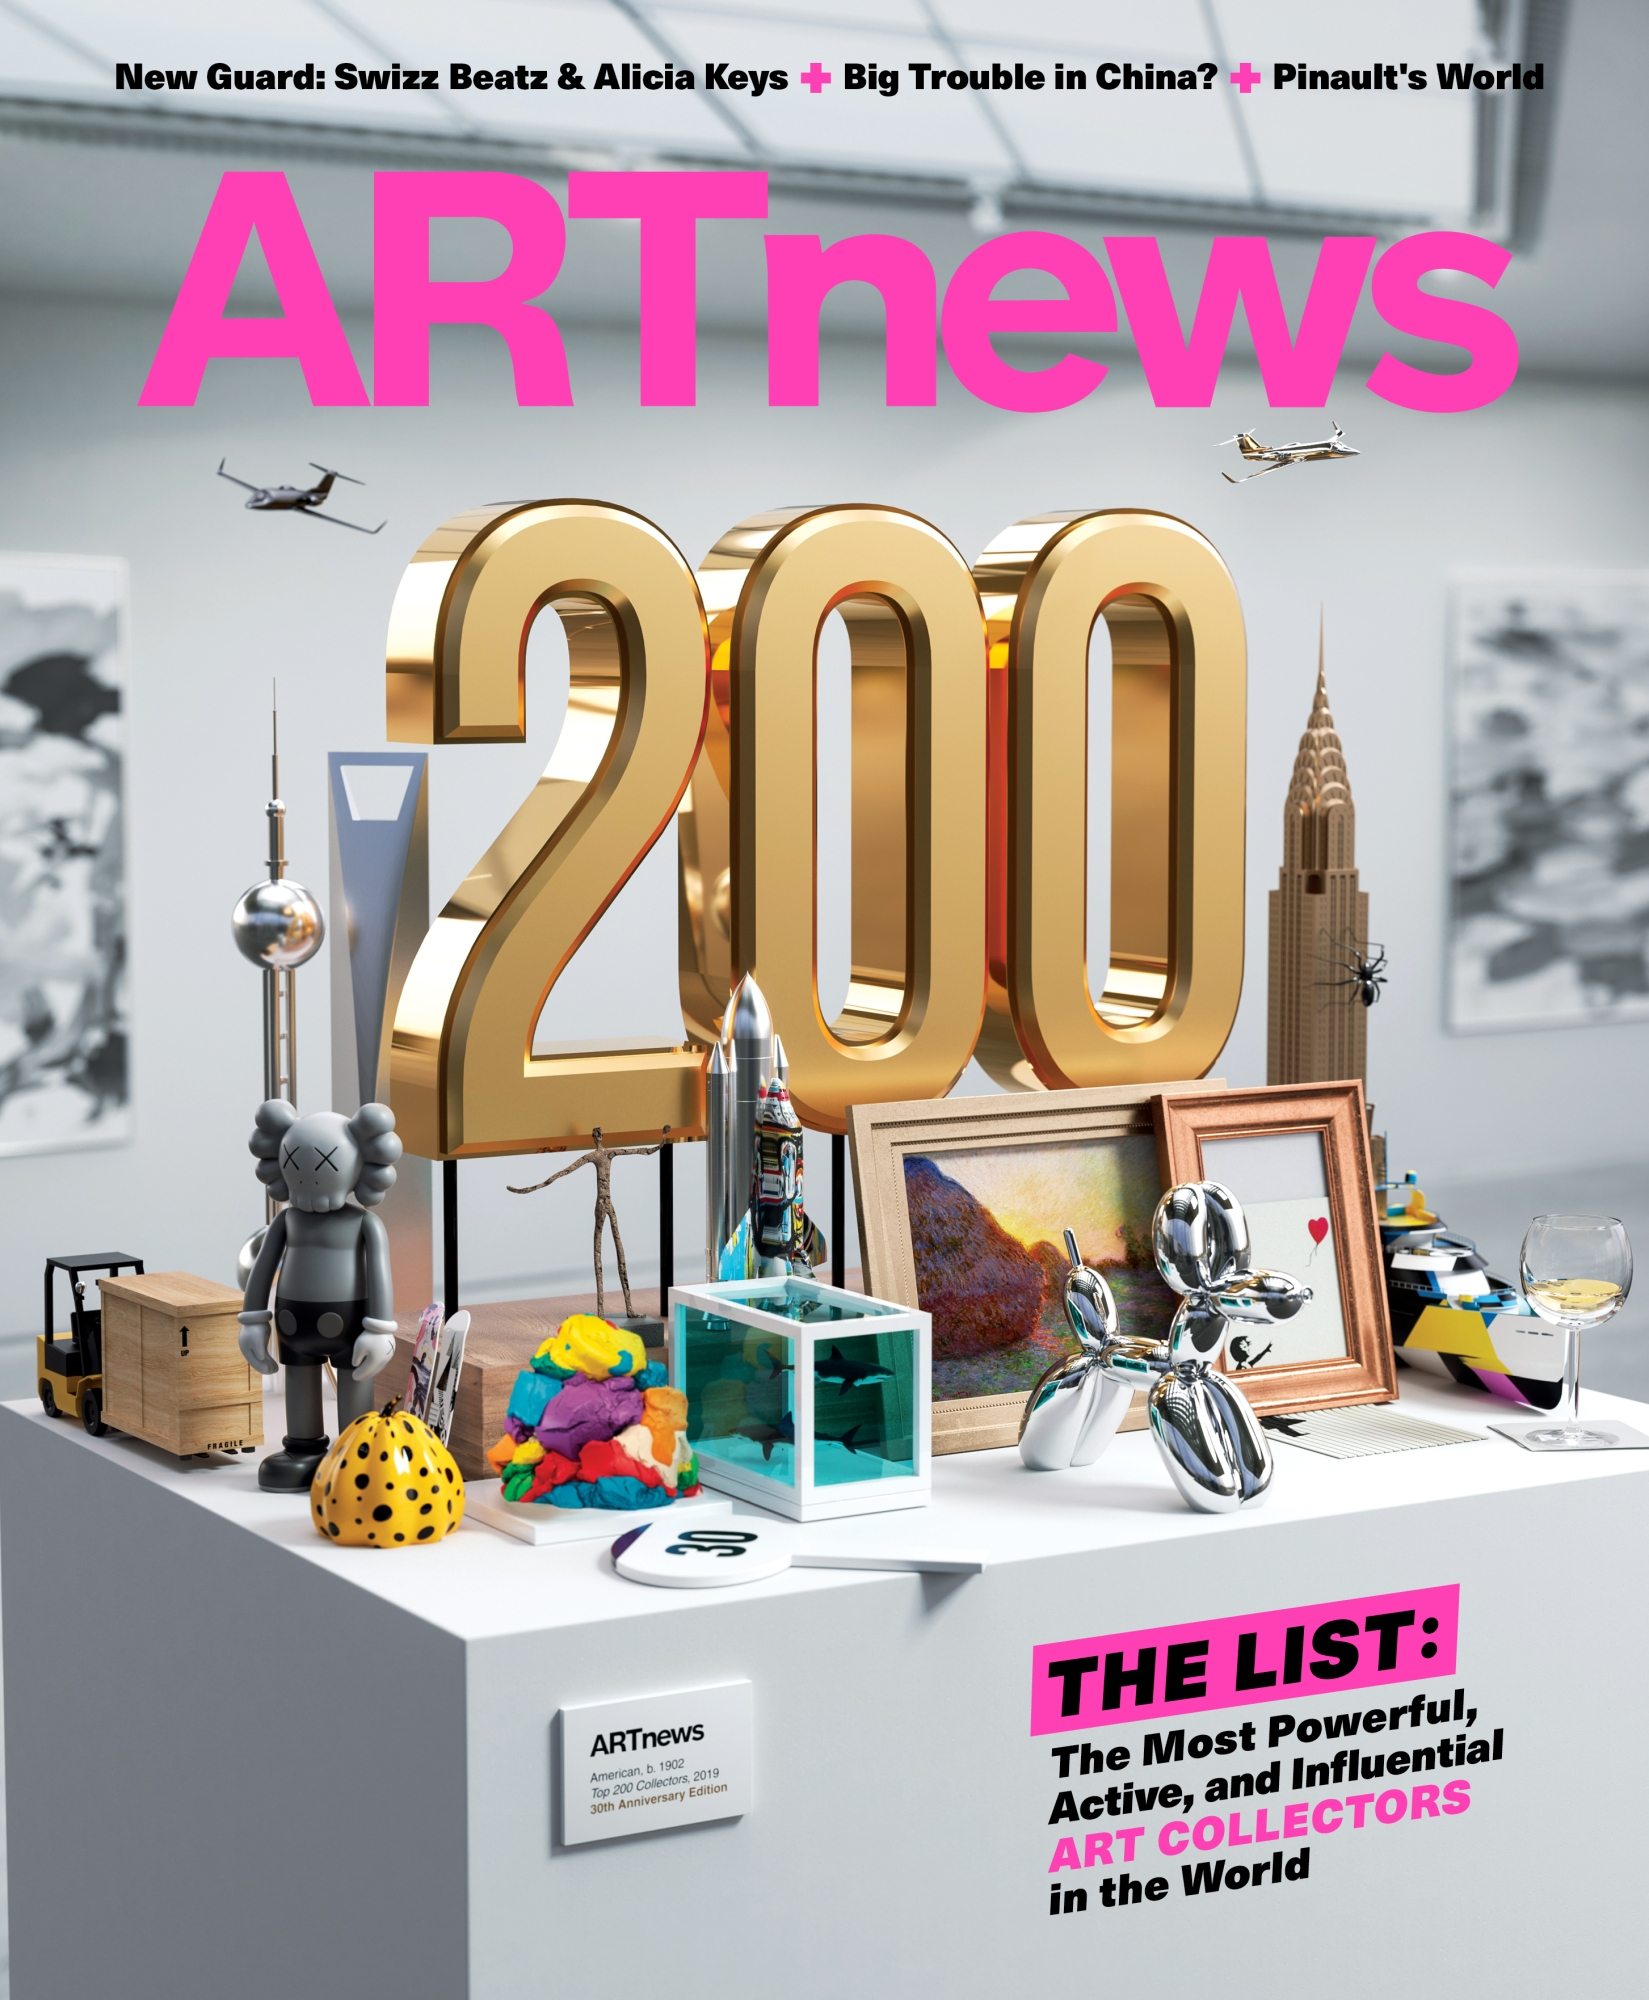 The ARTnews Editors' Favorite Artworks of